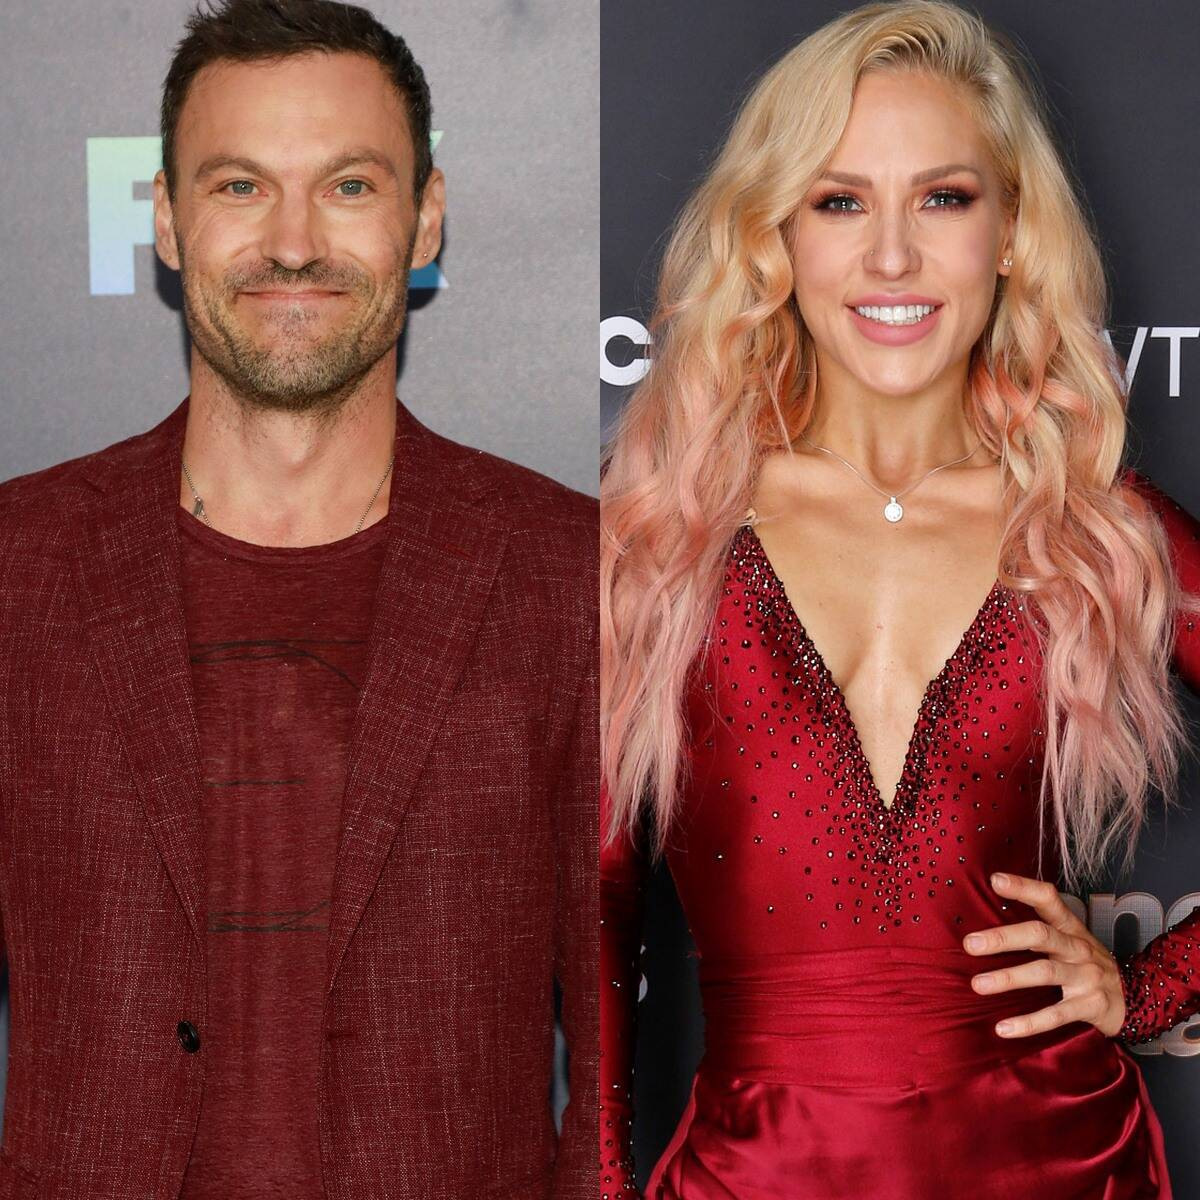 Brian Austin Green And Sharna Burgess: 'Possibilities Are Endless' For Their Relationship, Source Says – Details!